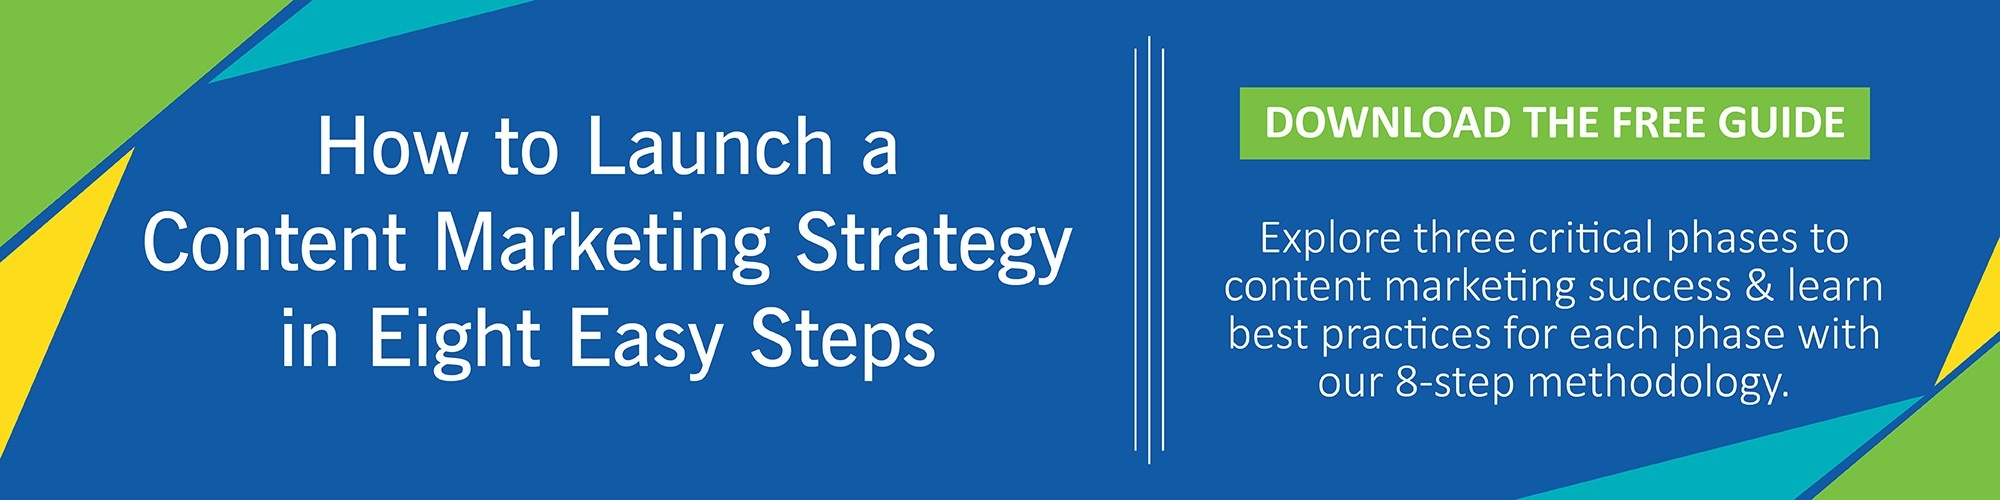 How to Launch a Content Marketing Strategy in Eight Easy Steps [Guide]